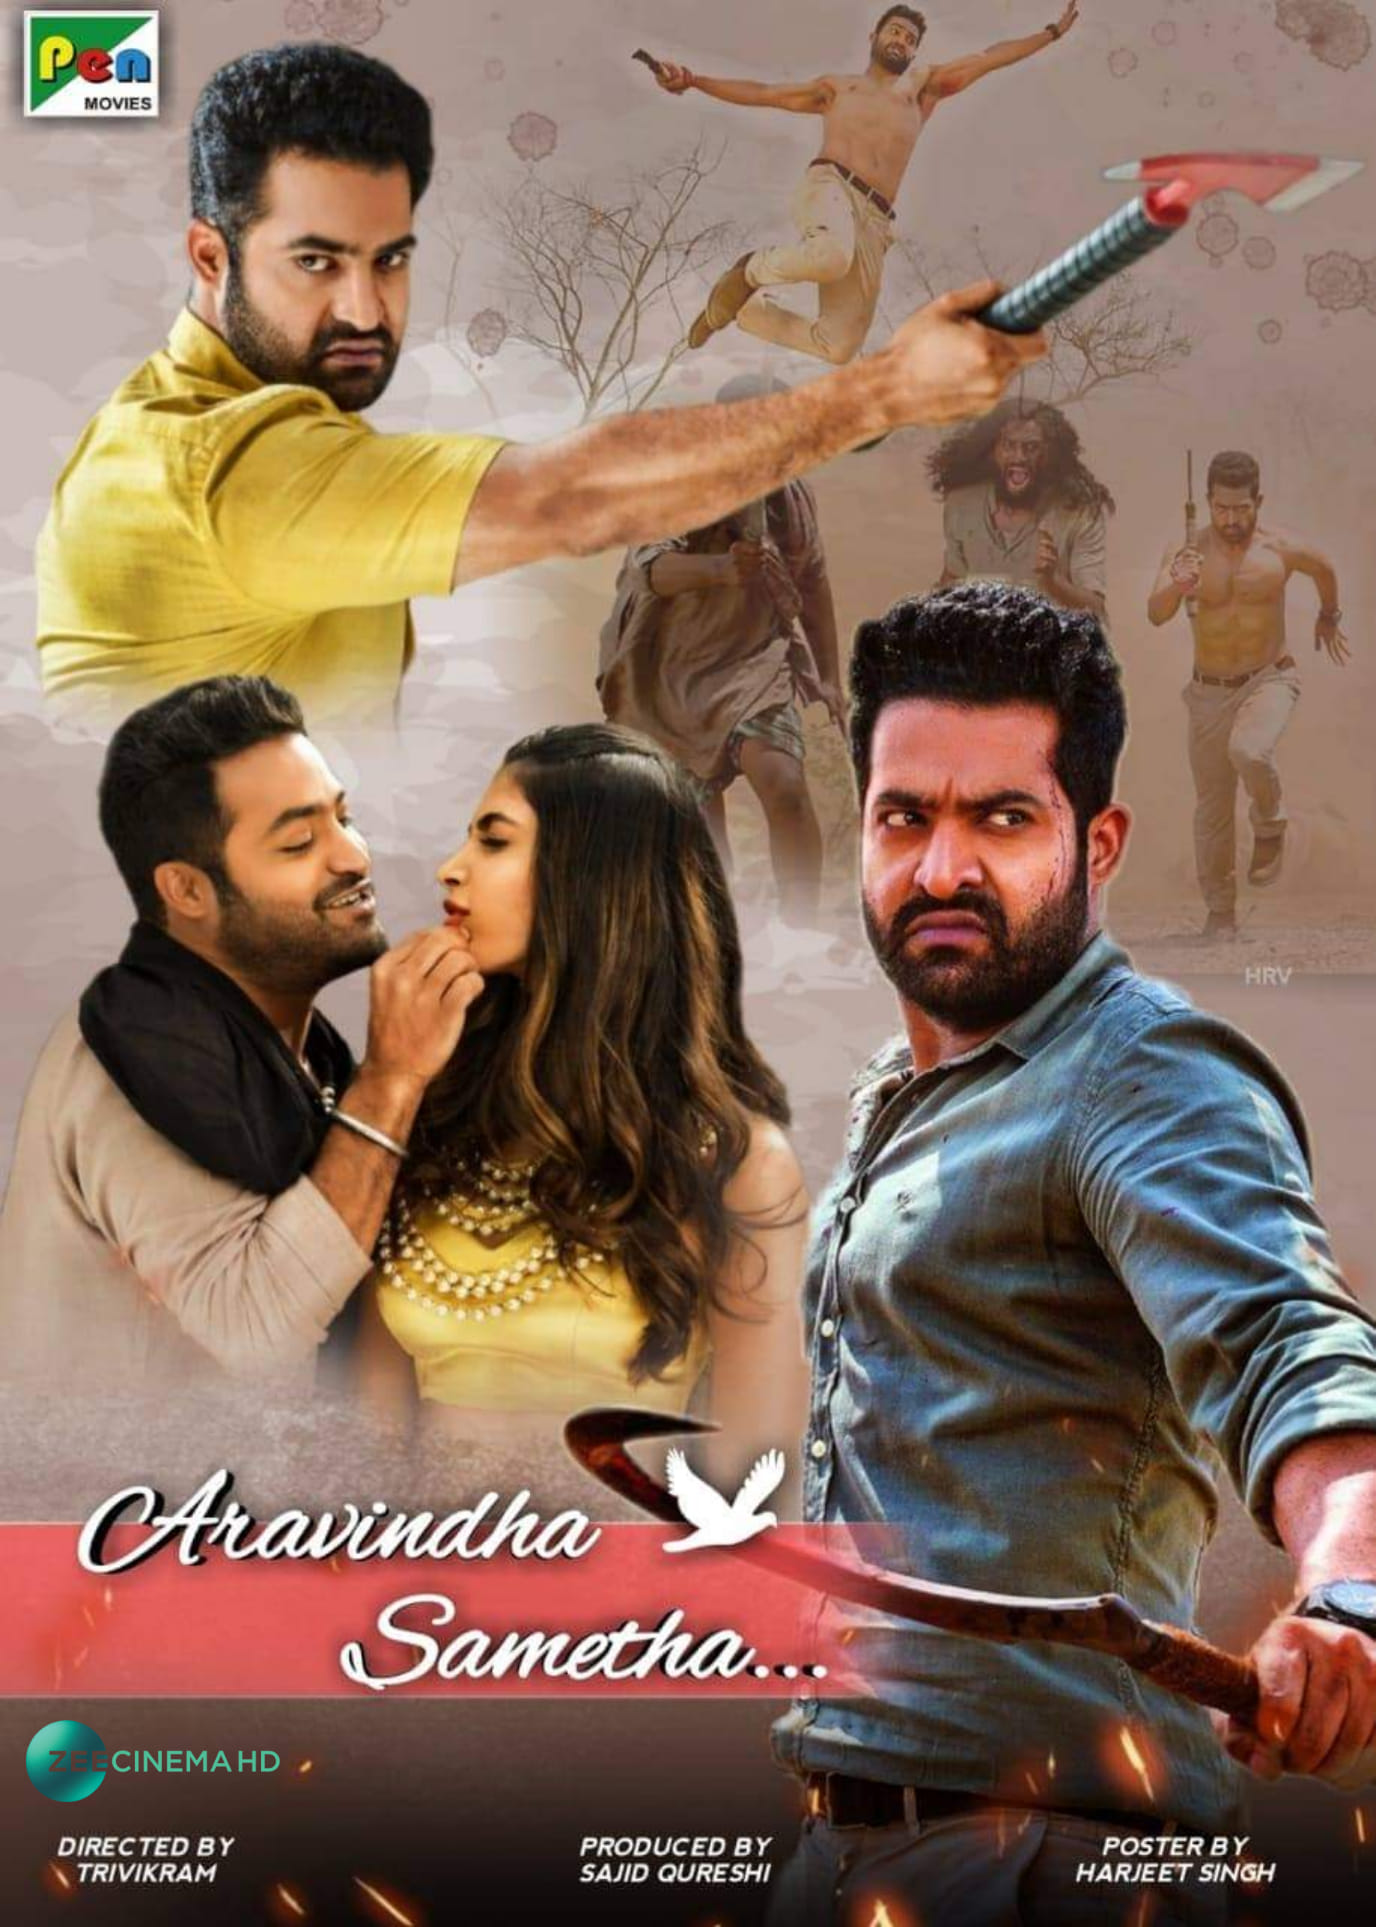 Aravinda Sametha Veera Raghava 2018 Hindi Dual Audio 575MB UNCUT HDRip Download